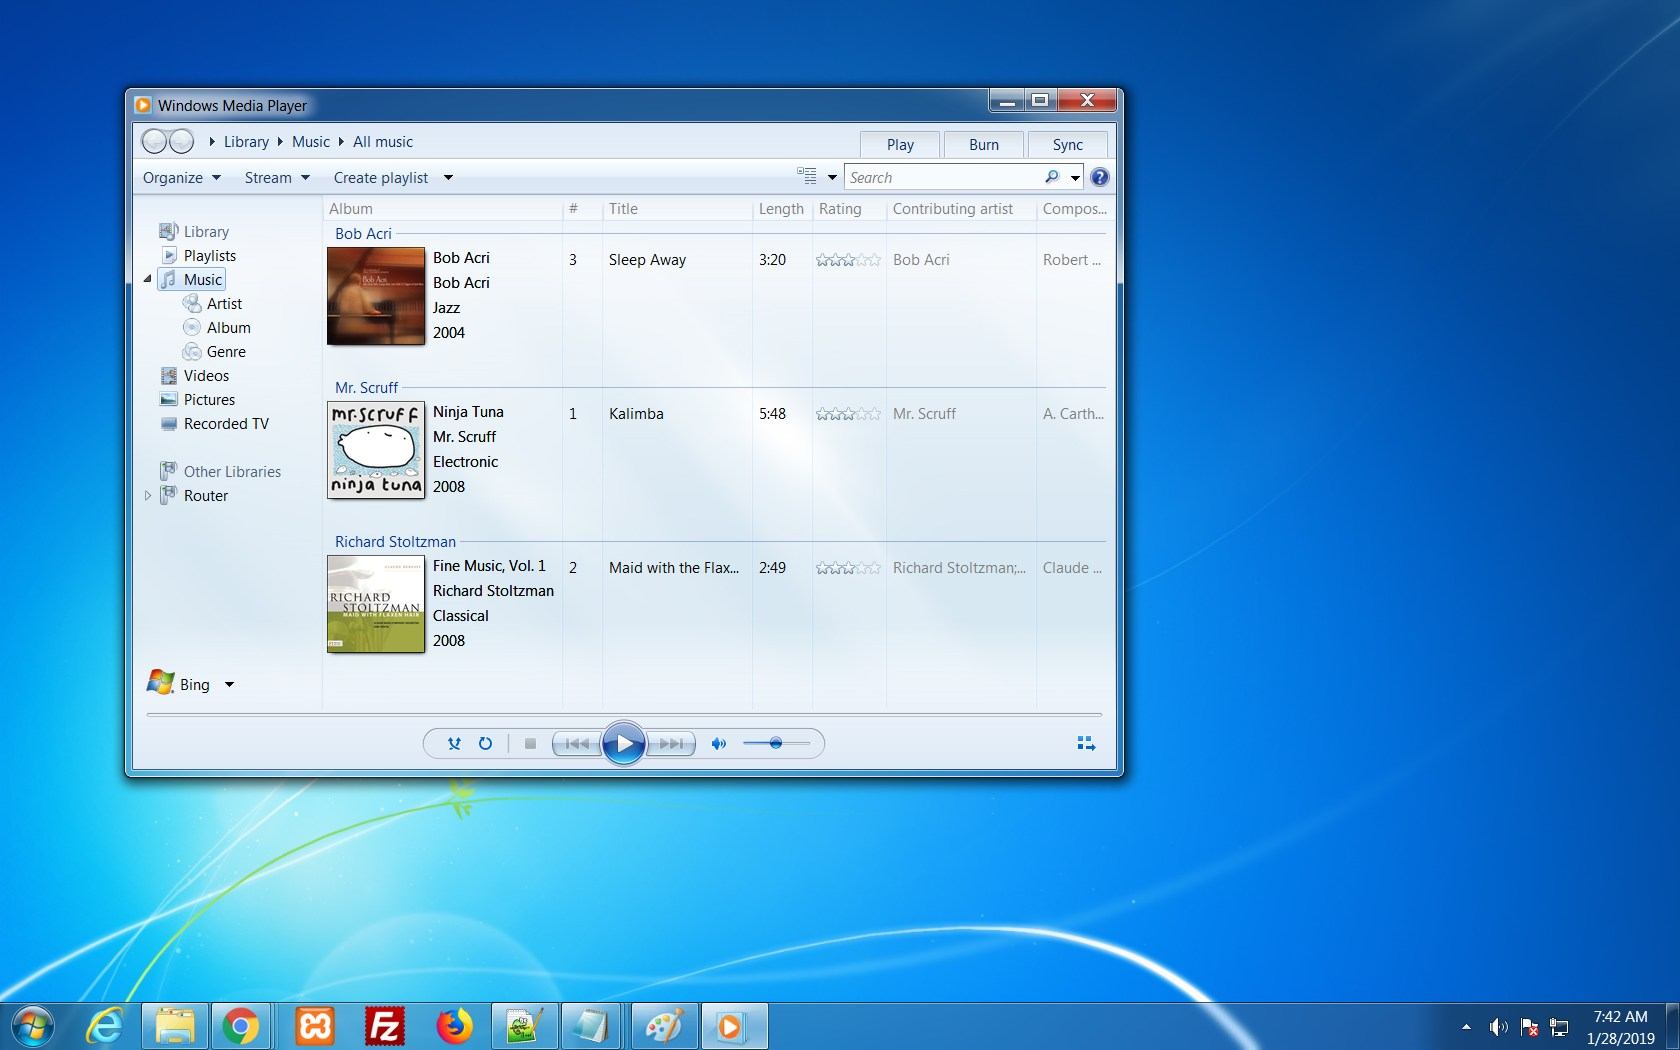 Windows Media Center on WIndows 7